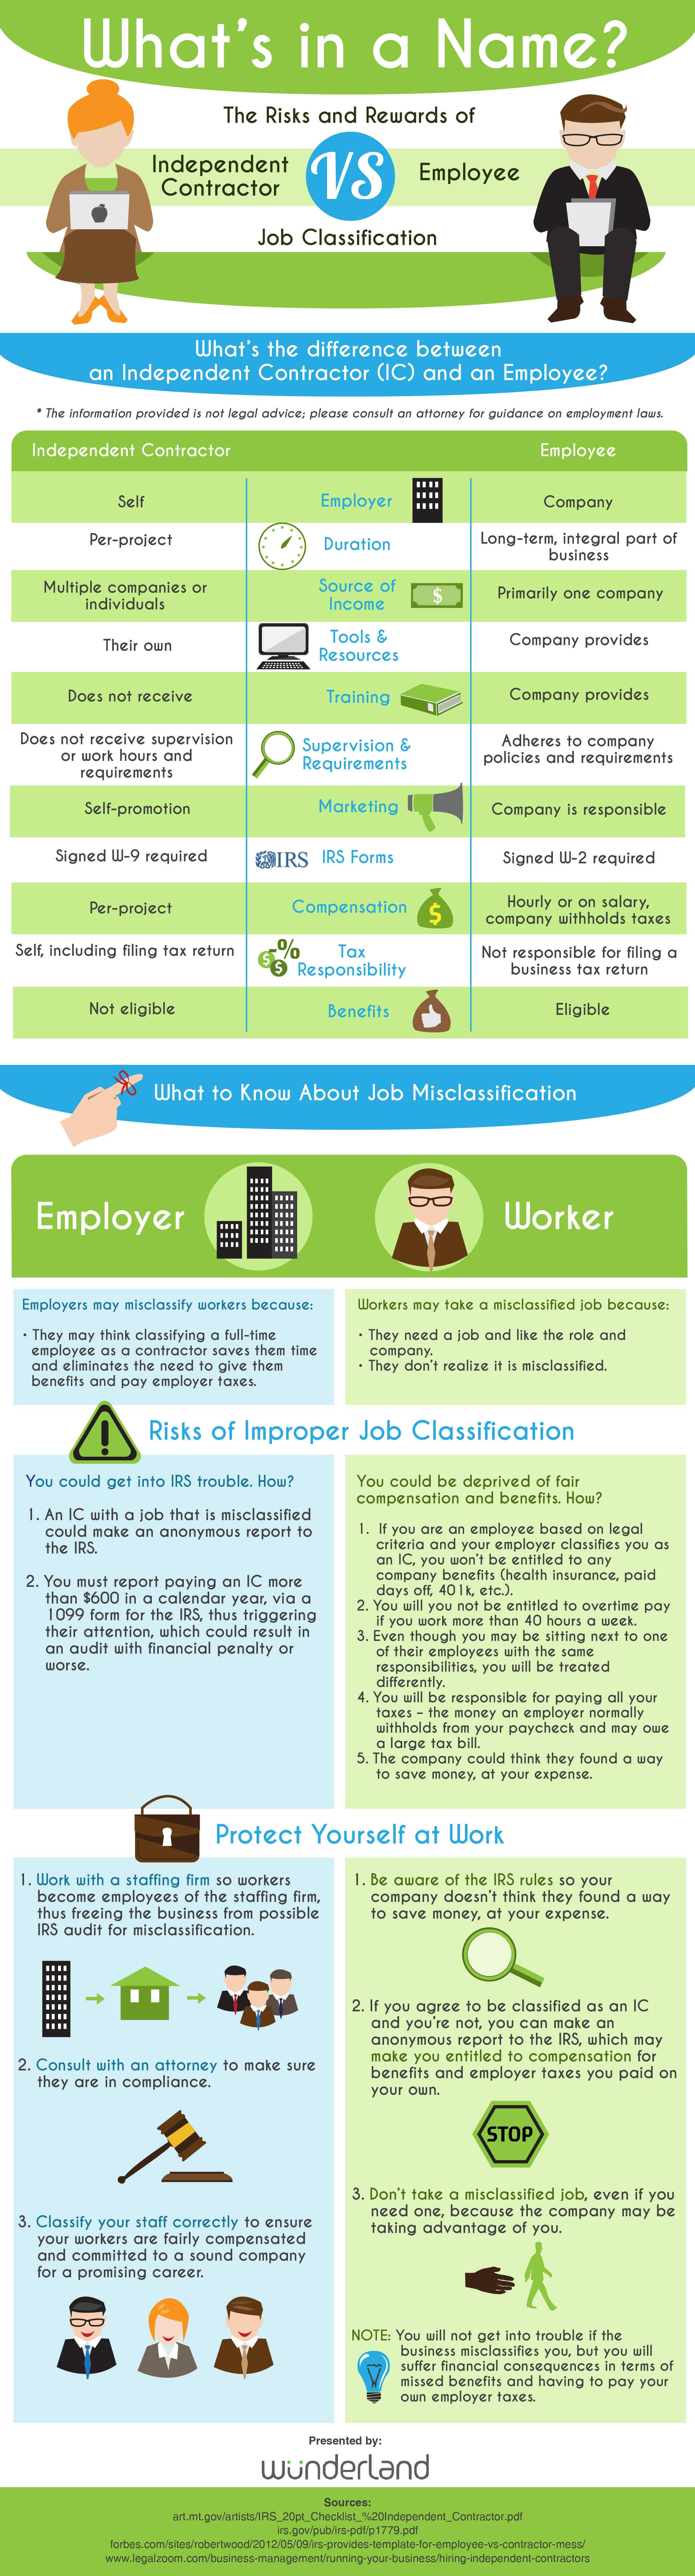 Why Employee vs. Independent Contractor Classification Matters